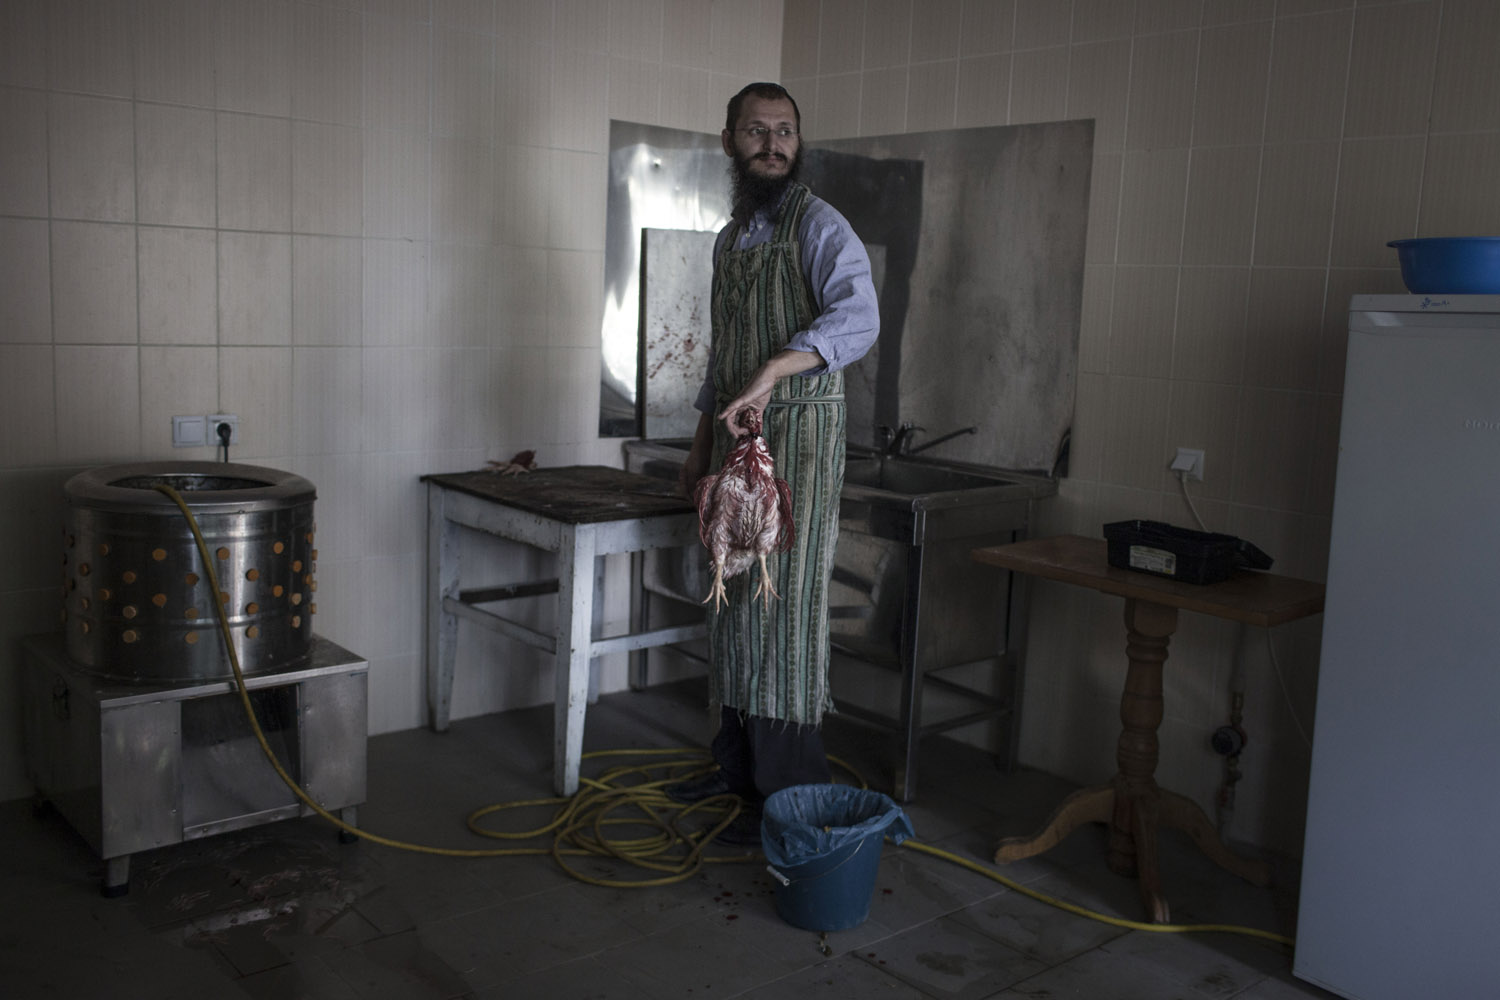 Alexander is the shochet (ritual slaughterer) of Mukacheve, and the last active one in the region. There aren't many people who eat kosher around so he is thinking to move somewhere else, probably to Israel, where he could get more work.